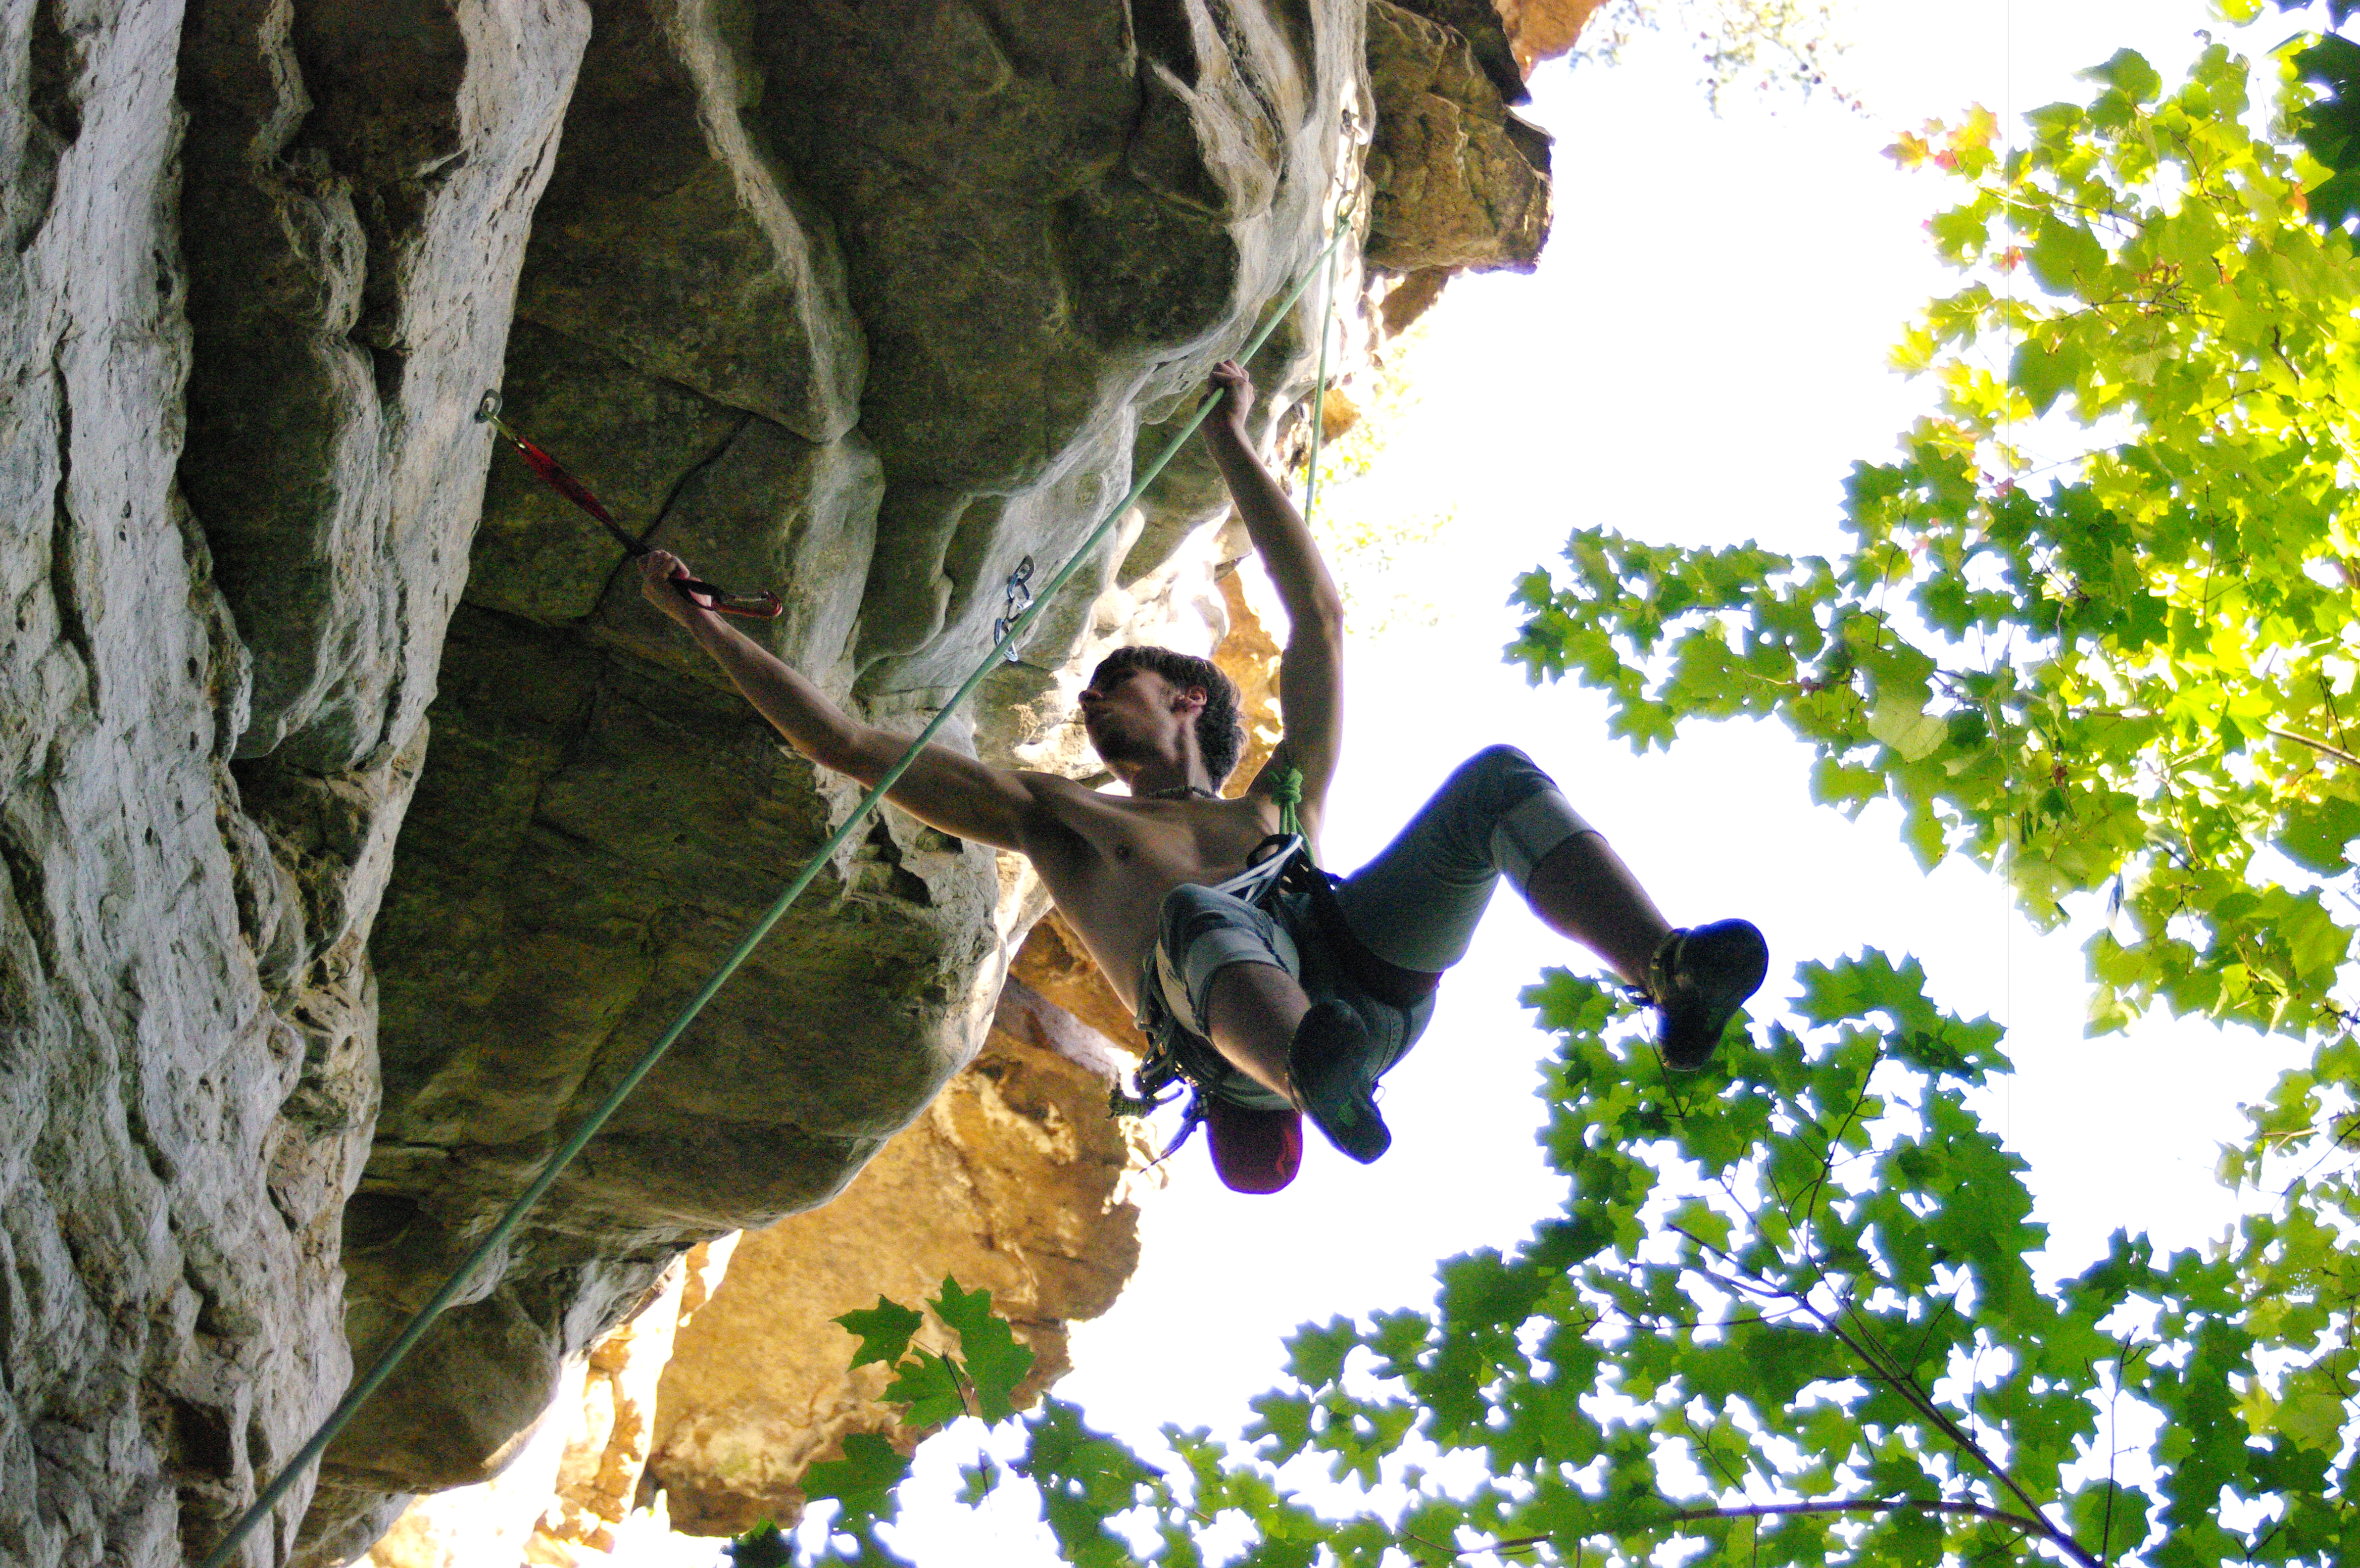 Climbing Sam falling off the wall after missing a Dyno in Franklin, WV